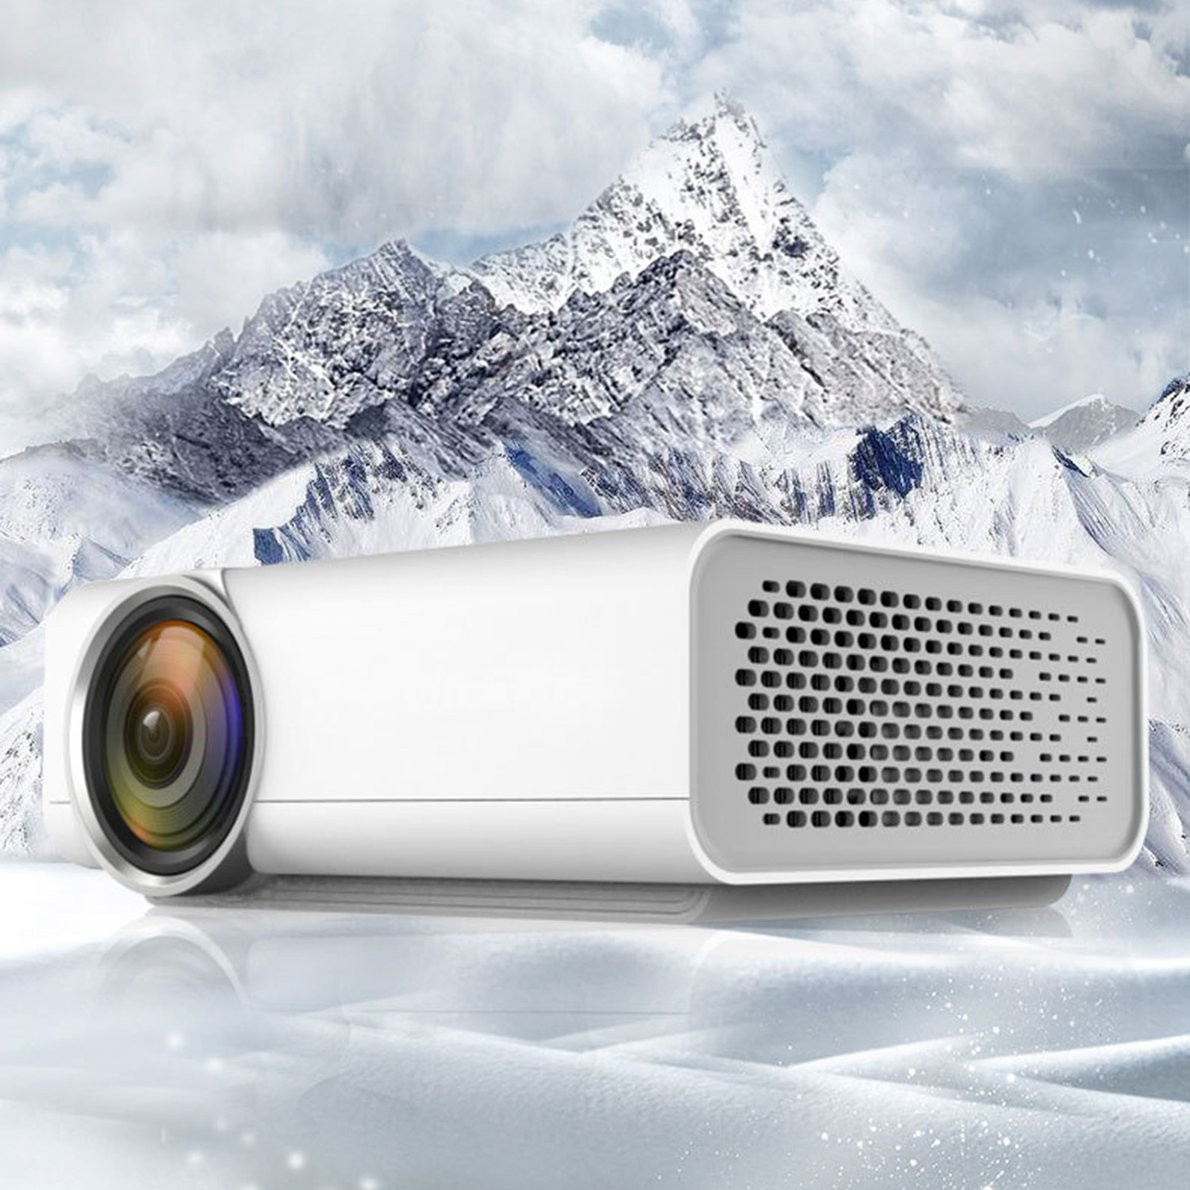 ⚡️โปรเจคเตอร์⚡️ YG520 Home LED Projector Mini Portable 1080P HD Projection For Home Theater